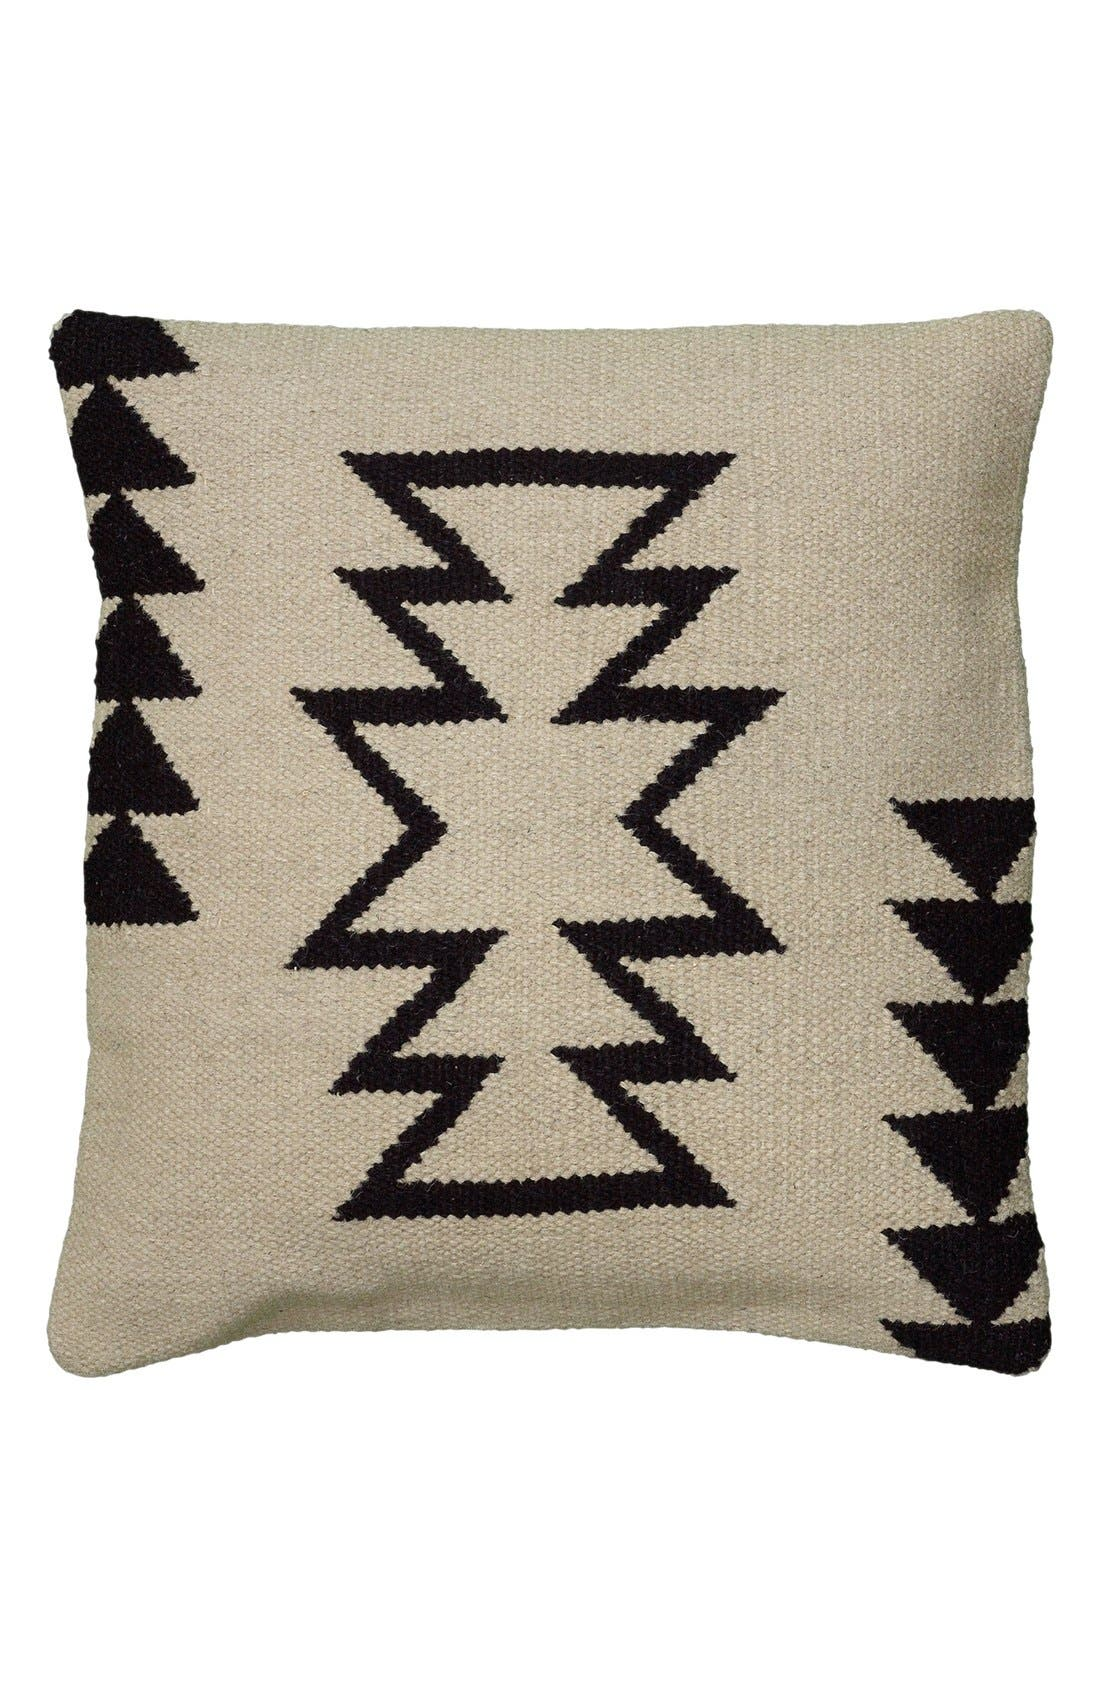 Rizzy Home 'Phoenix' Pillow